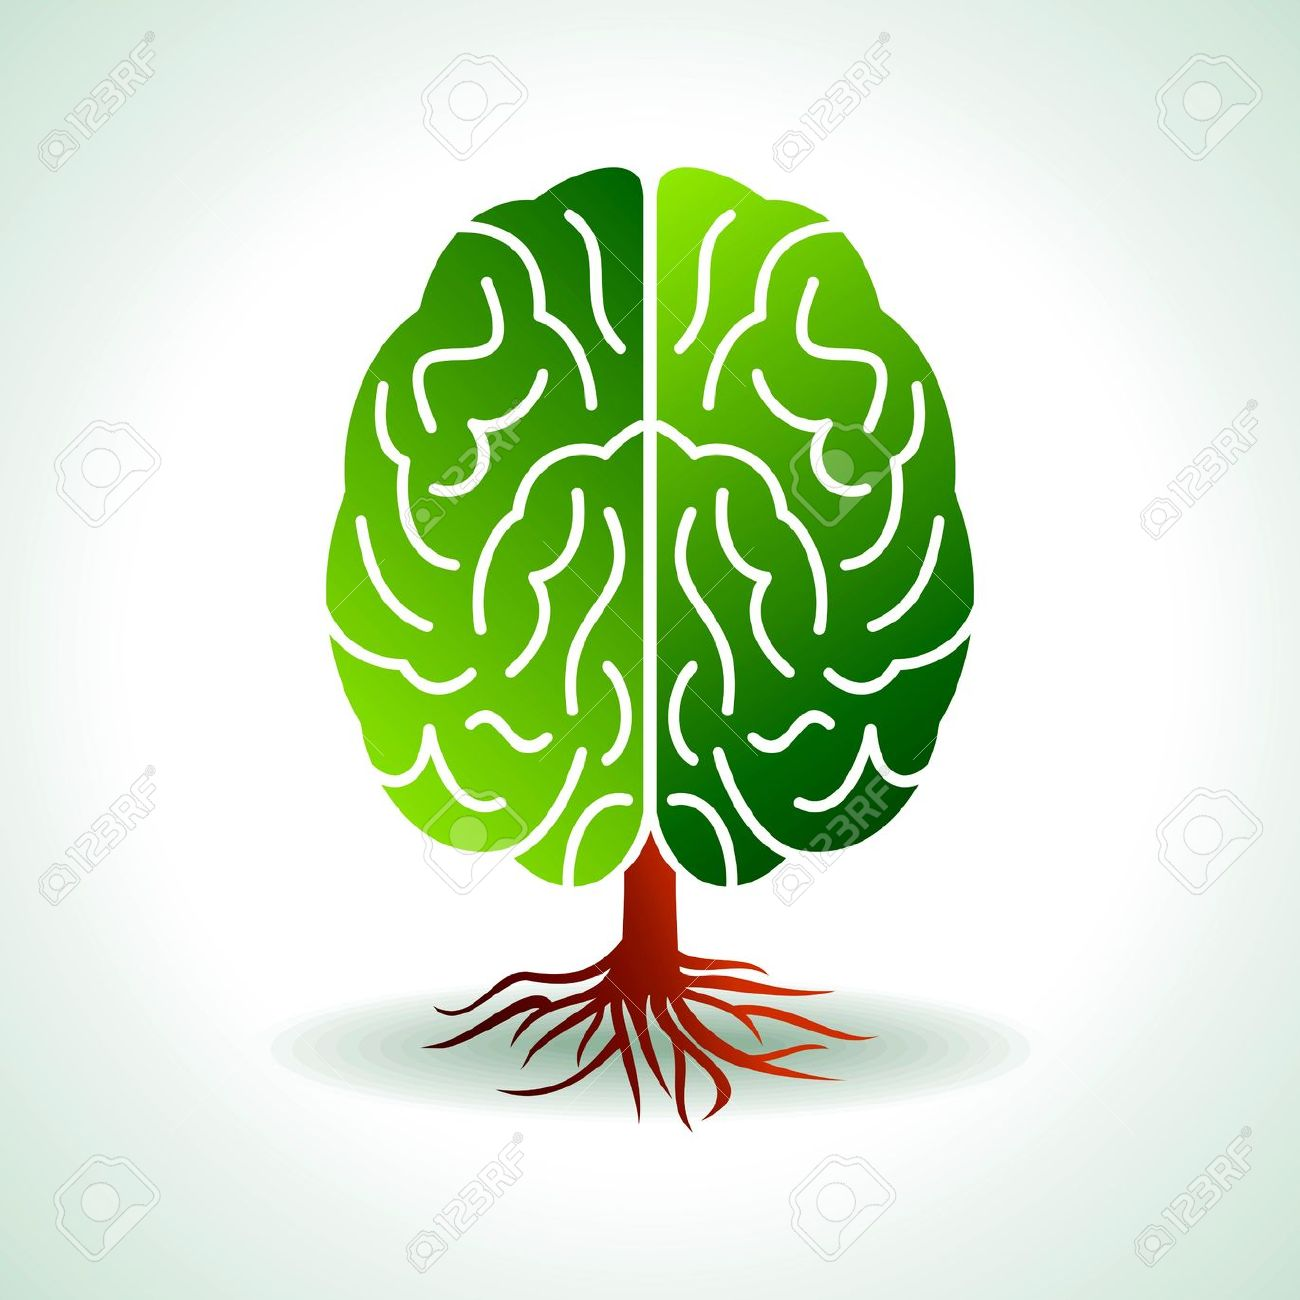 5,824 Brain Growth Stock Vector Illustration And Royalty Free.